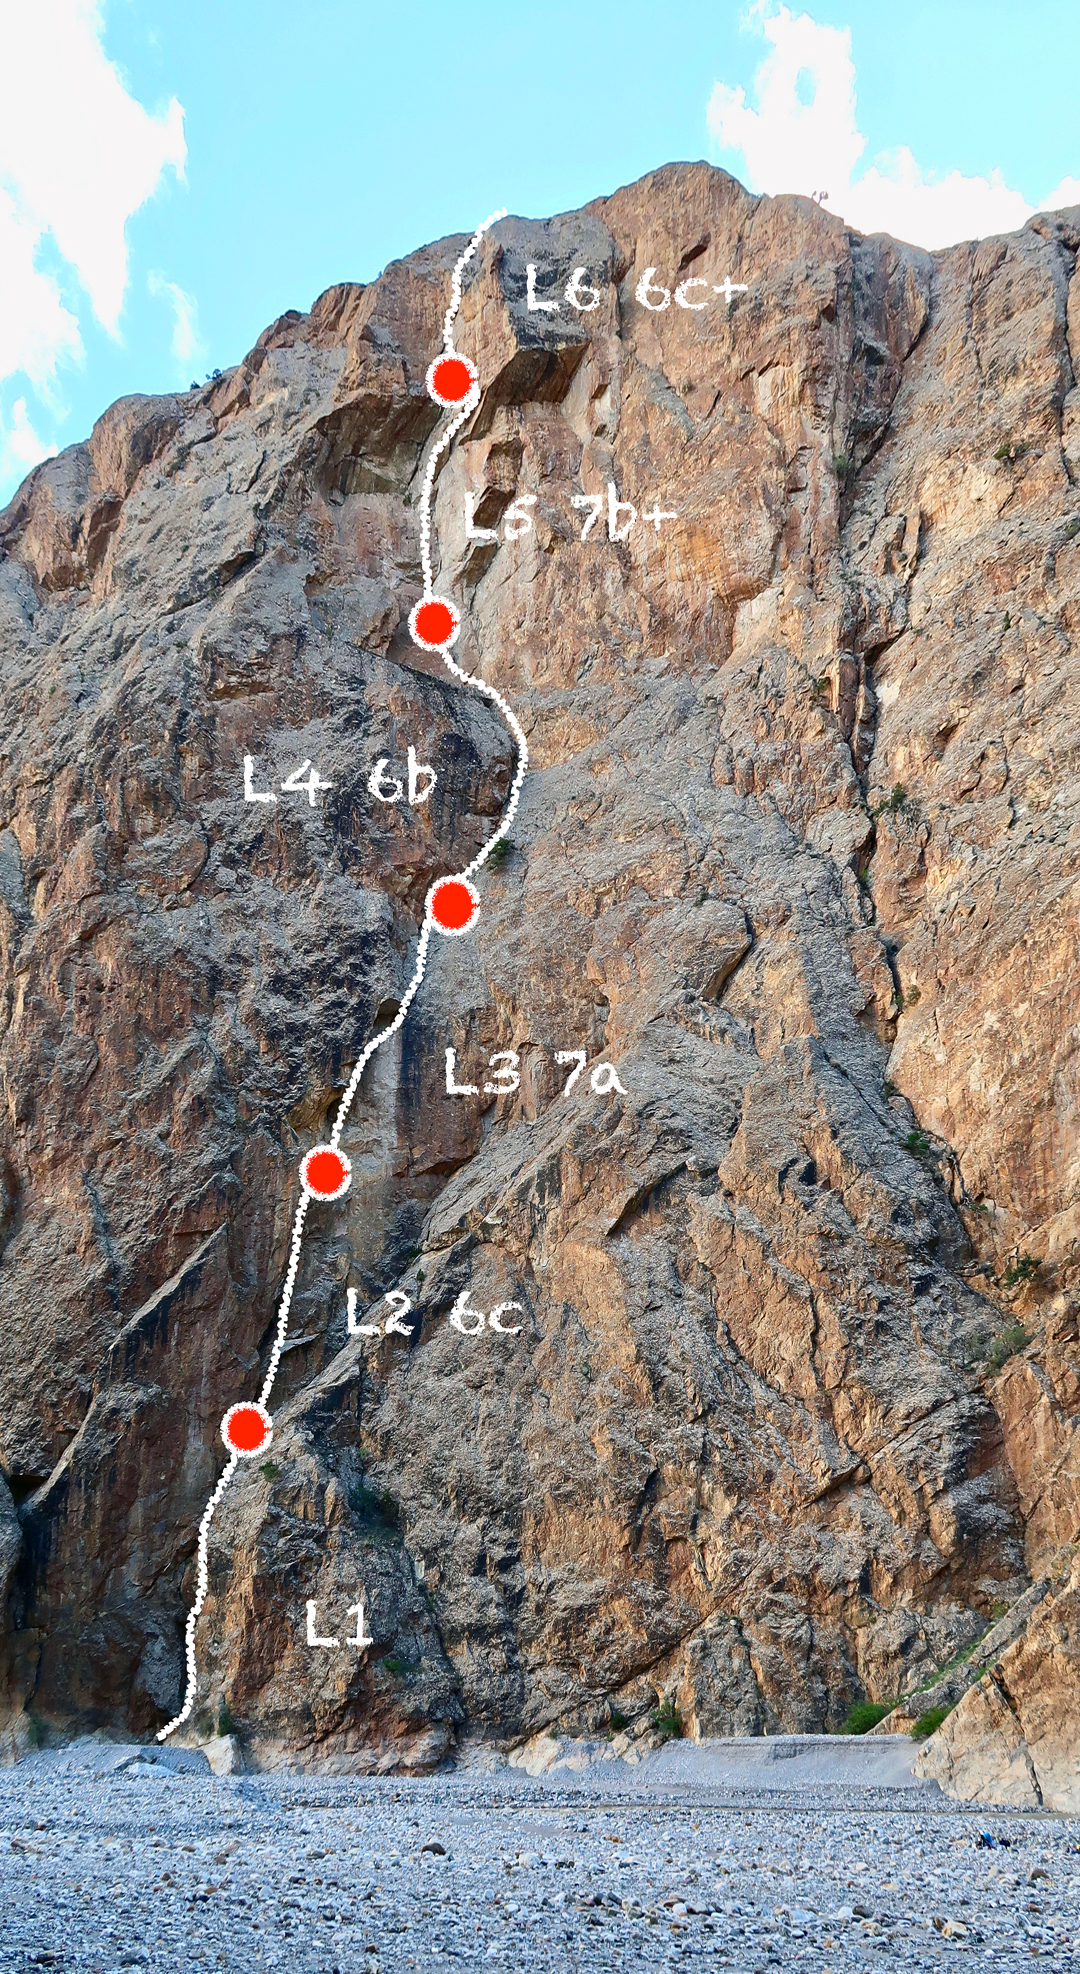 Removable Crux (250m, 7b+), Yarkhun Valley.